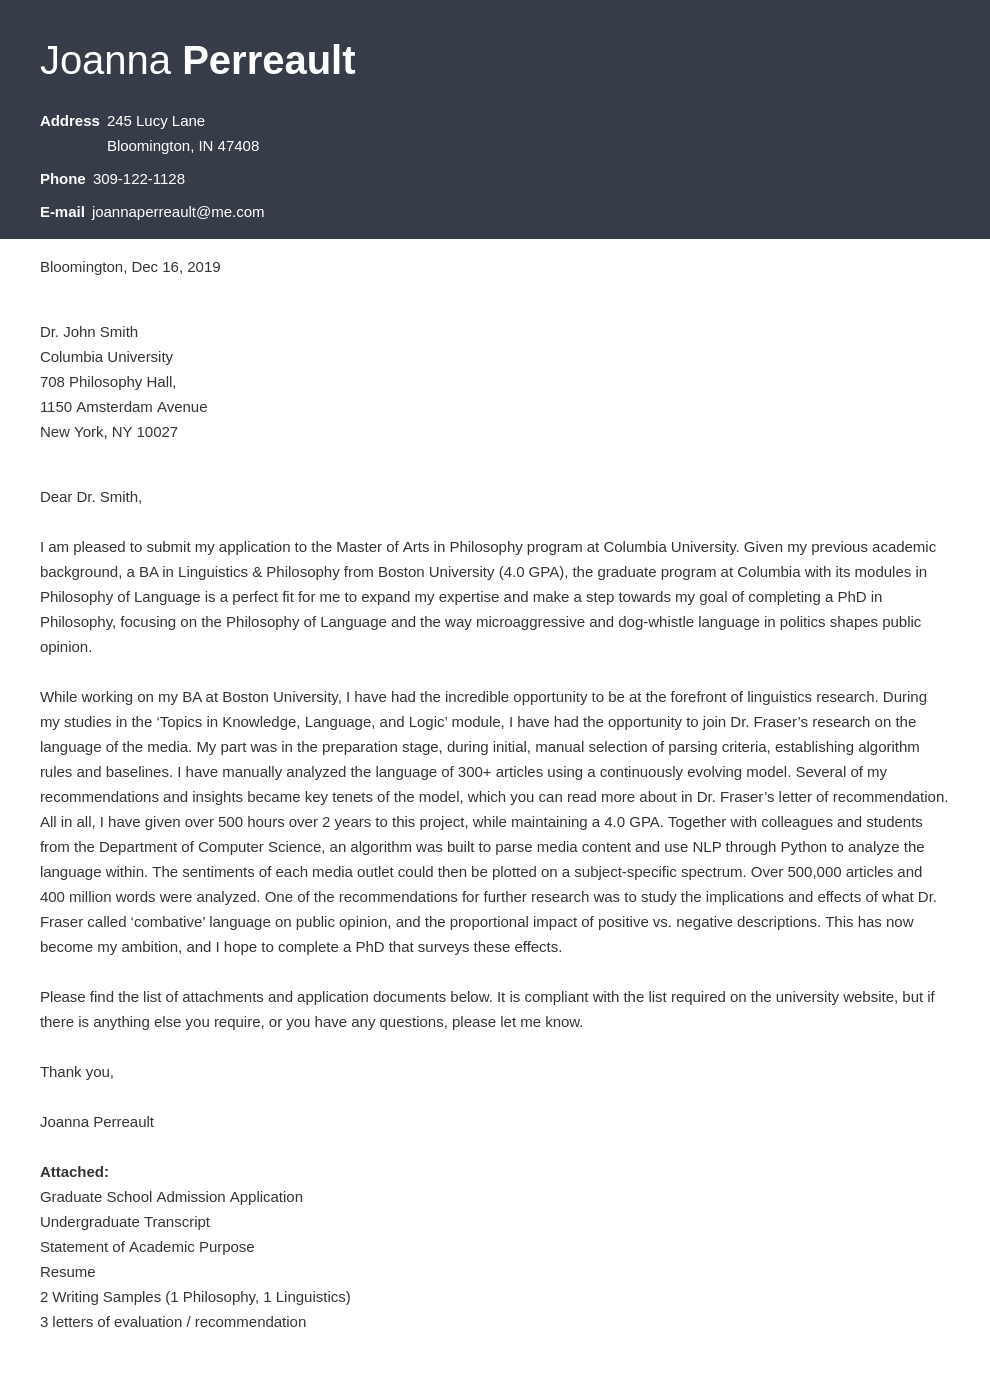 cover letter examples graduate school template diamond